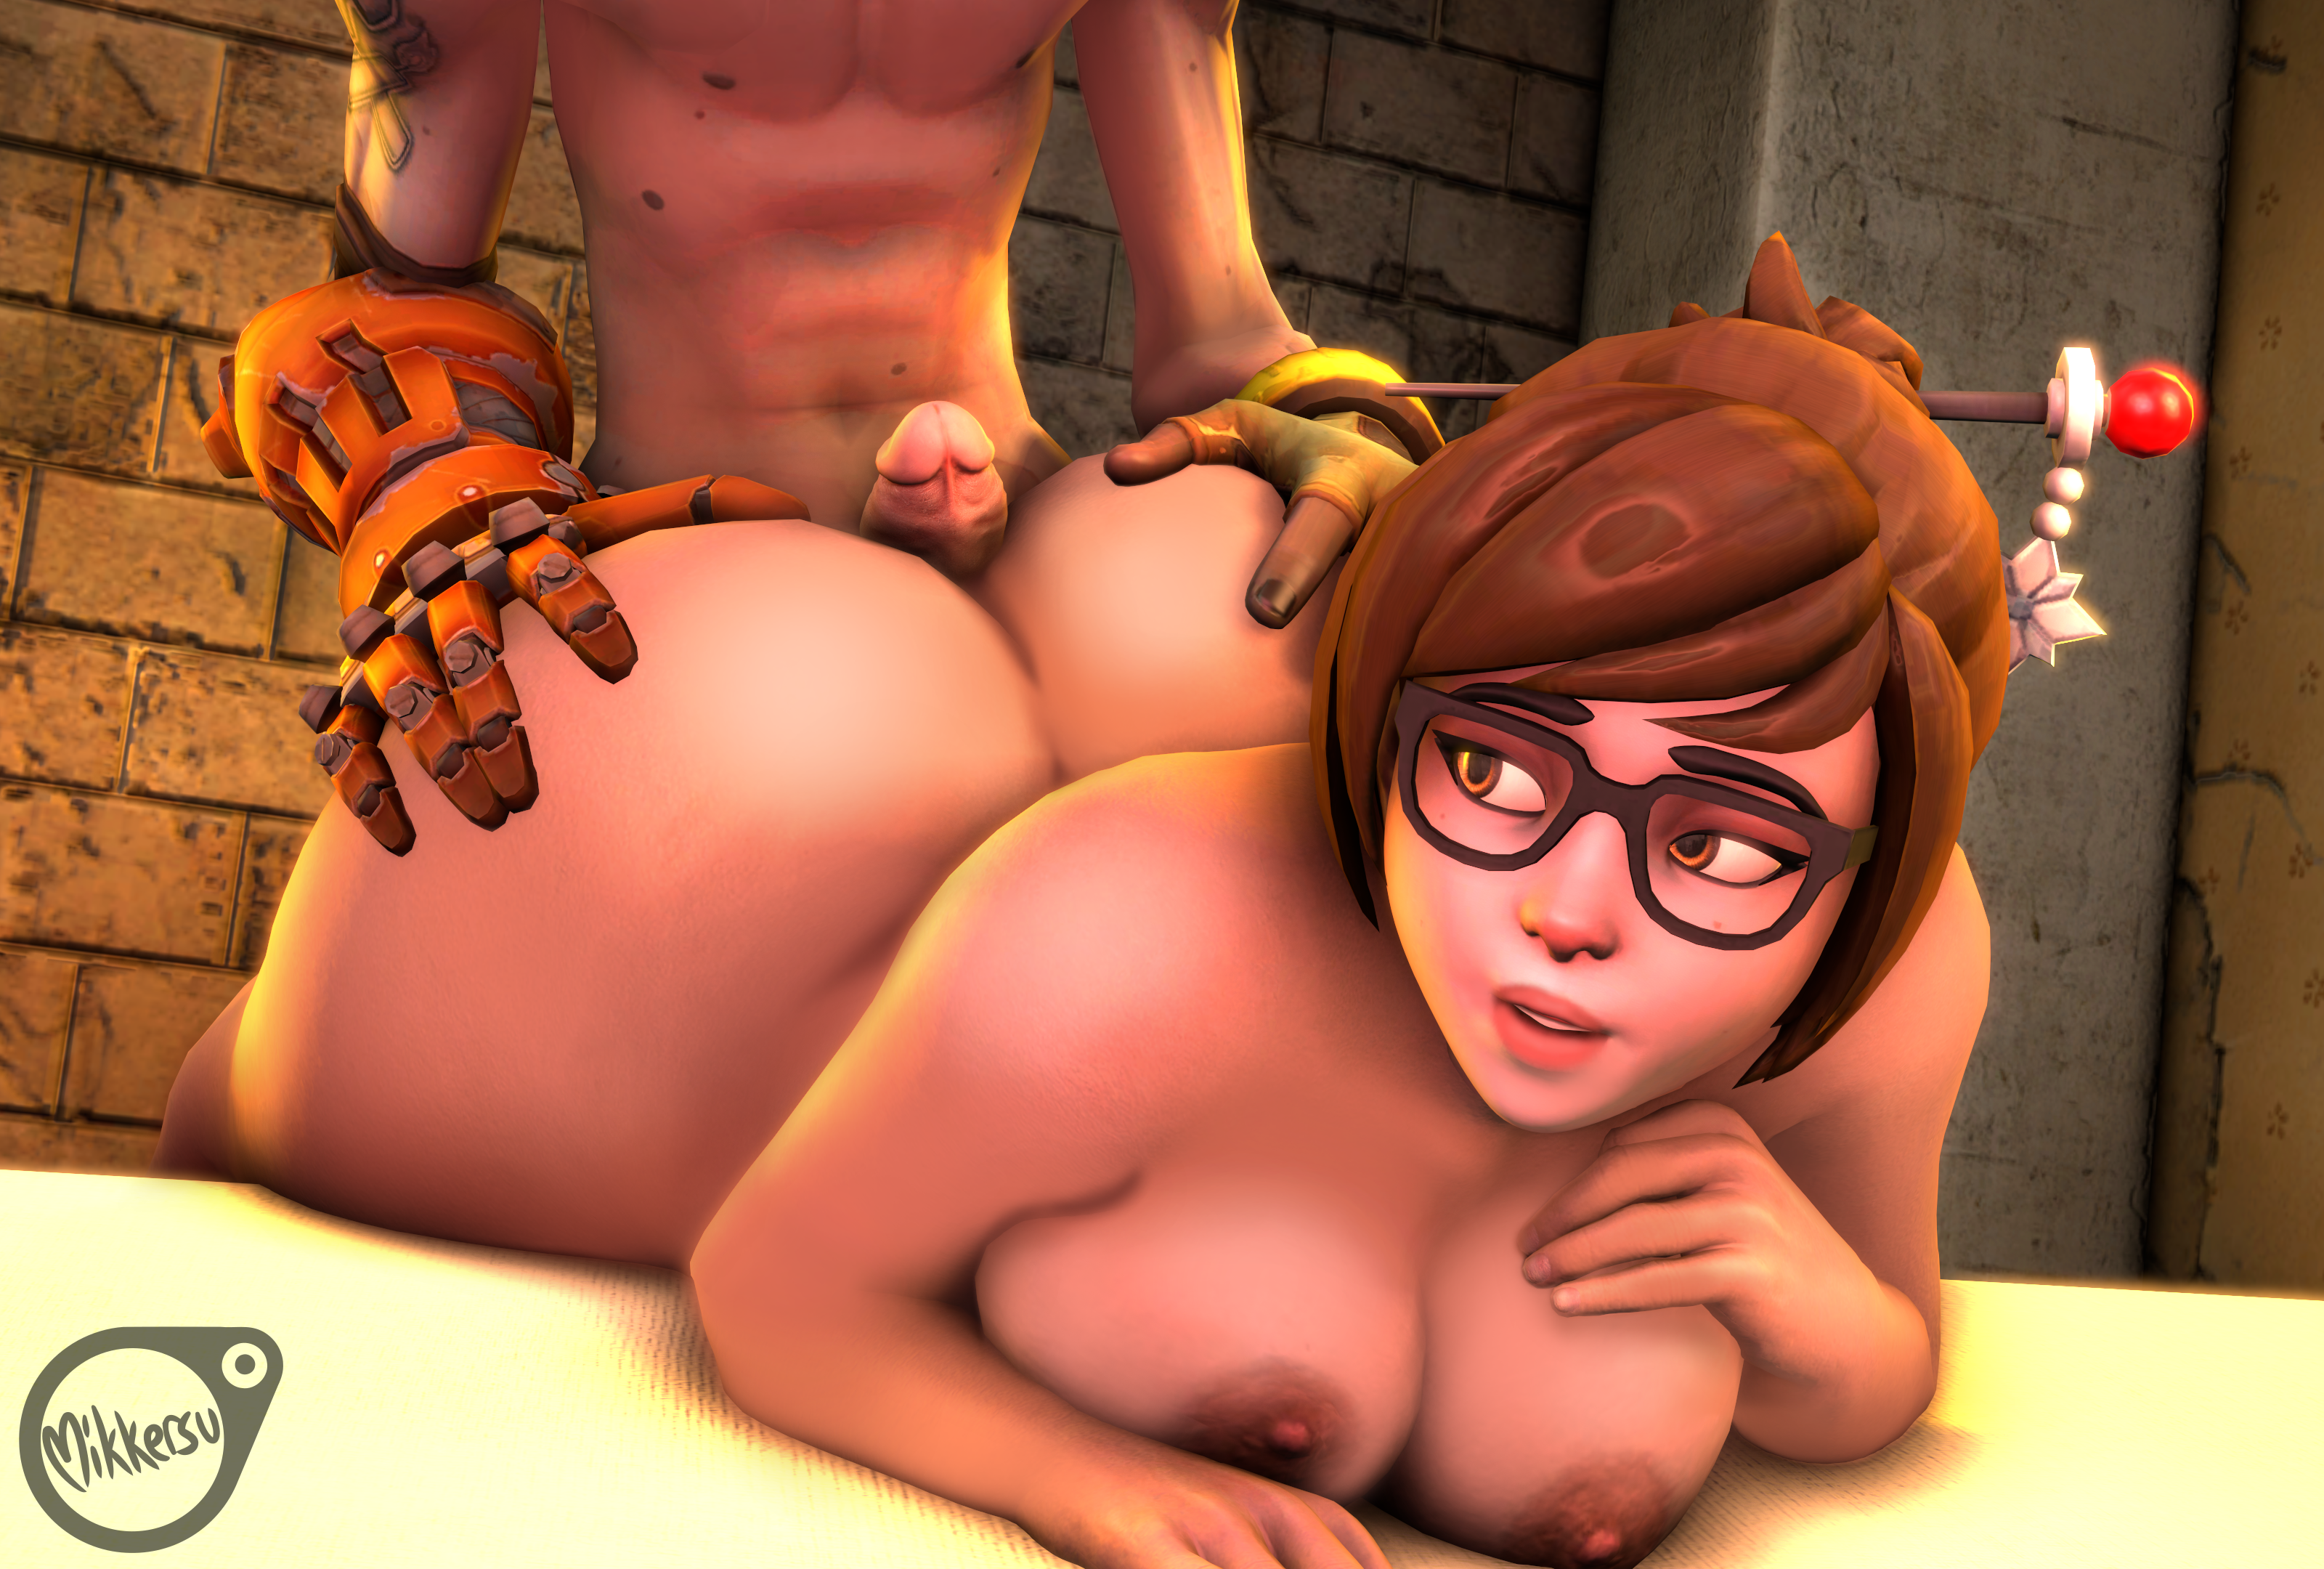 Overwatch Sex Games amp Videos  Overwatch Porn Tour  HentaiGO